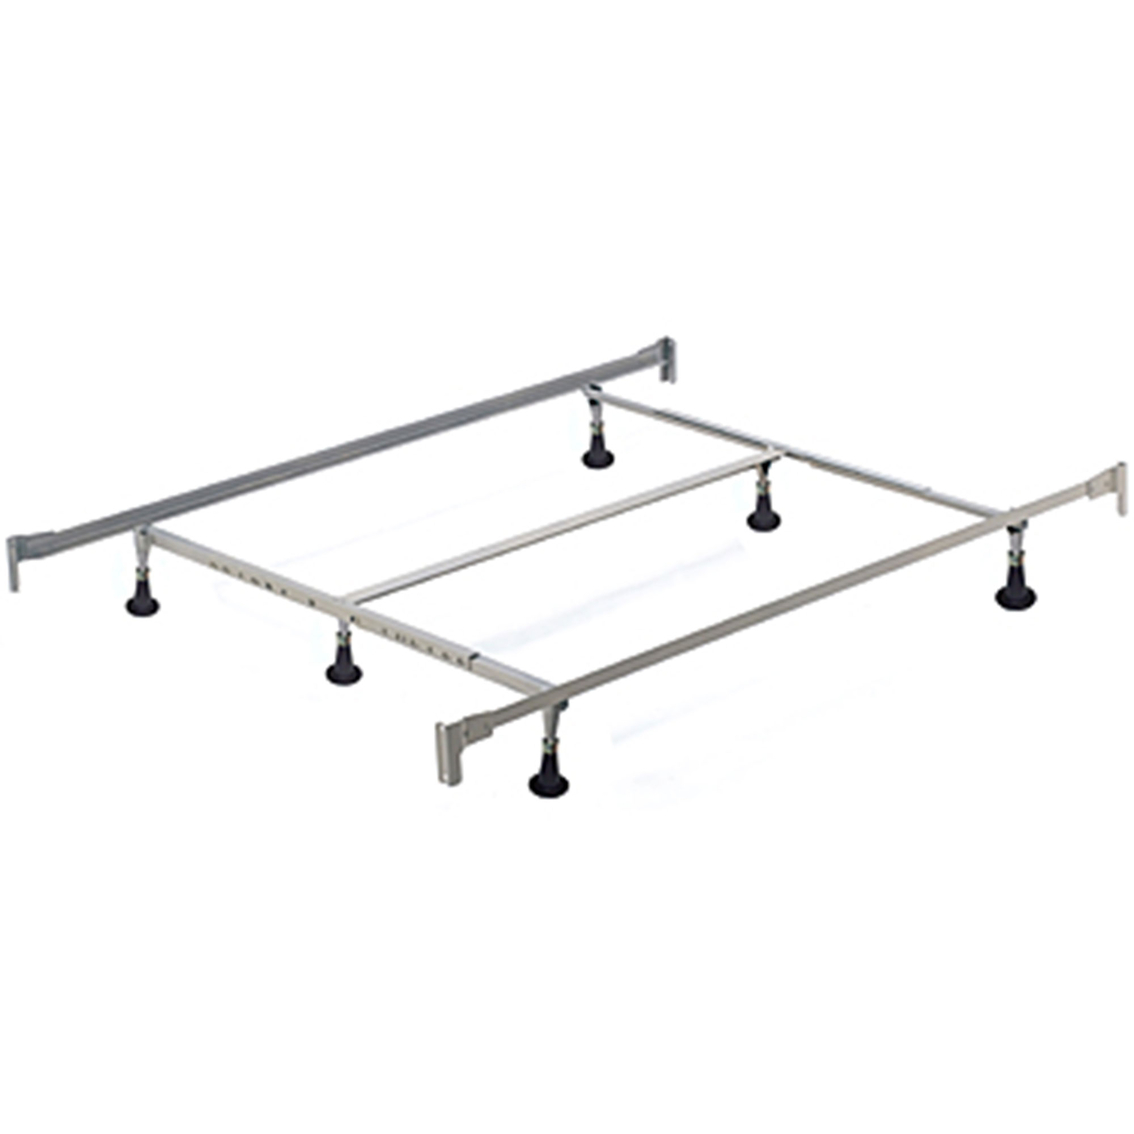 Hillsdale Queen/king Bed Frame With 6 Leg Support | Beds | Home ...